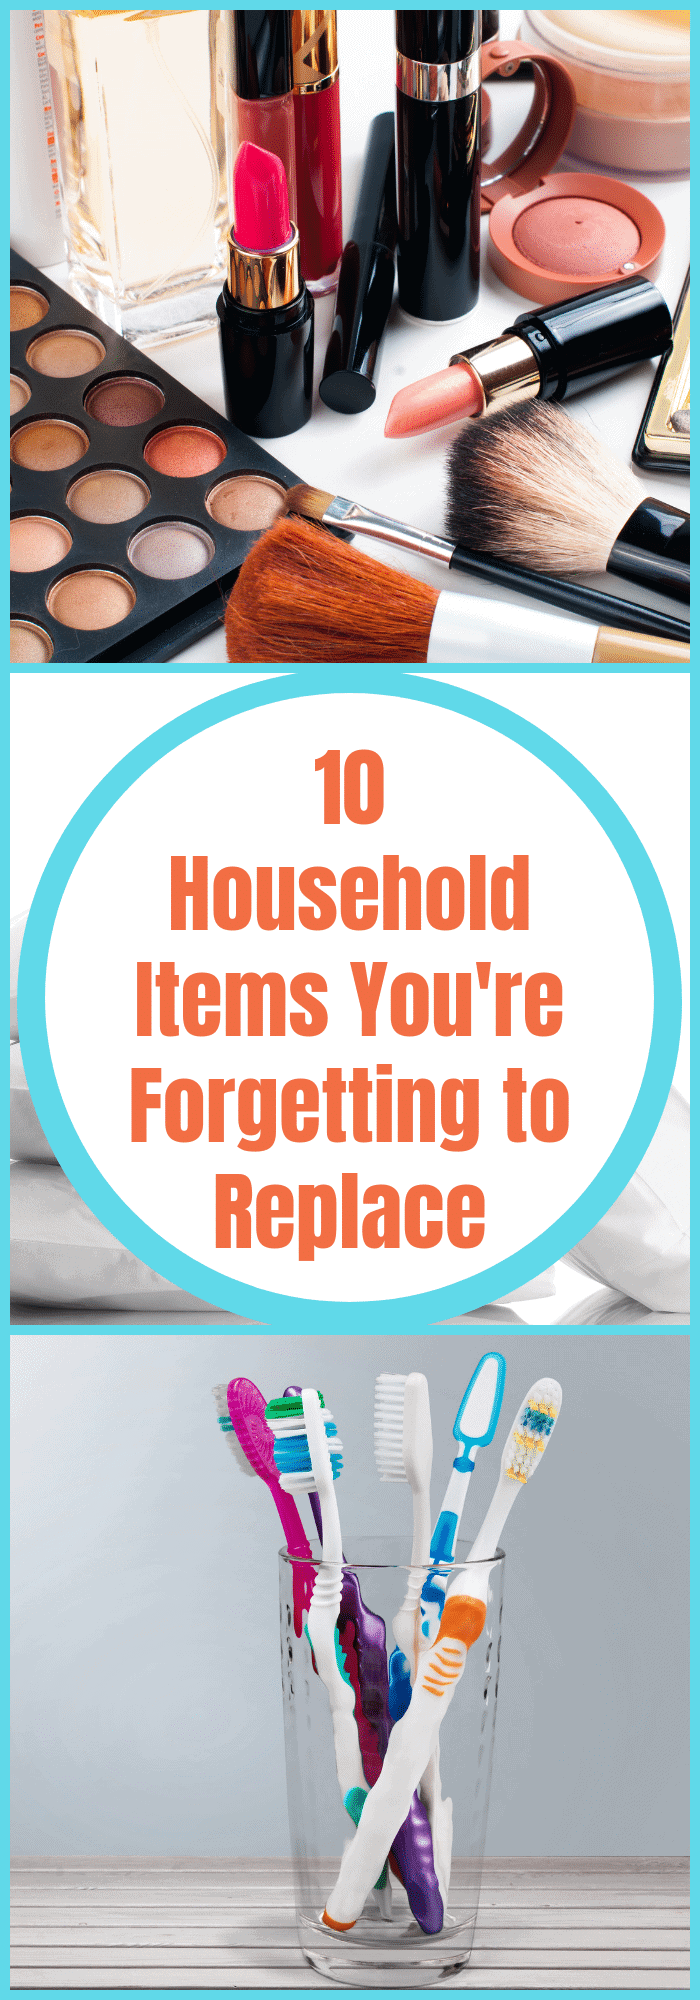 How often to replace household items